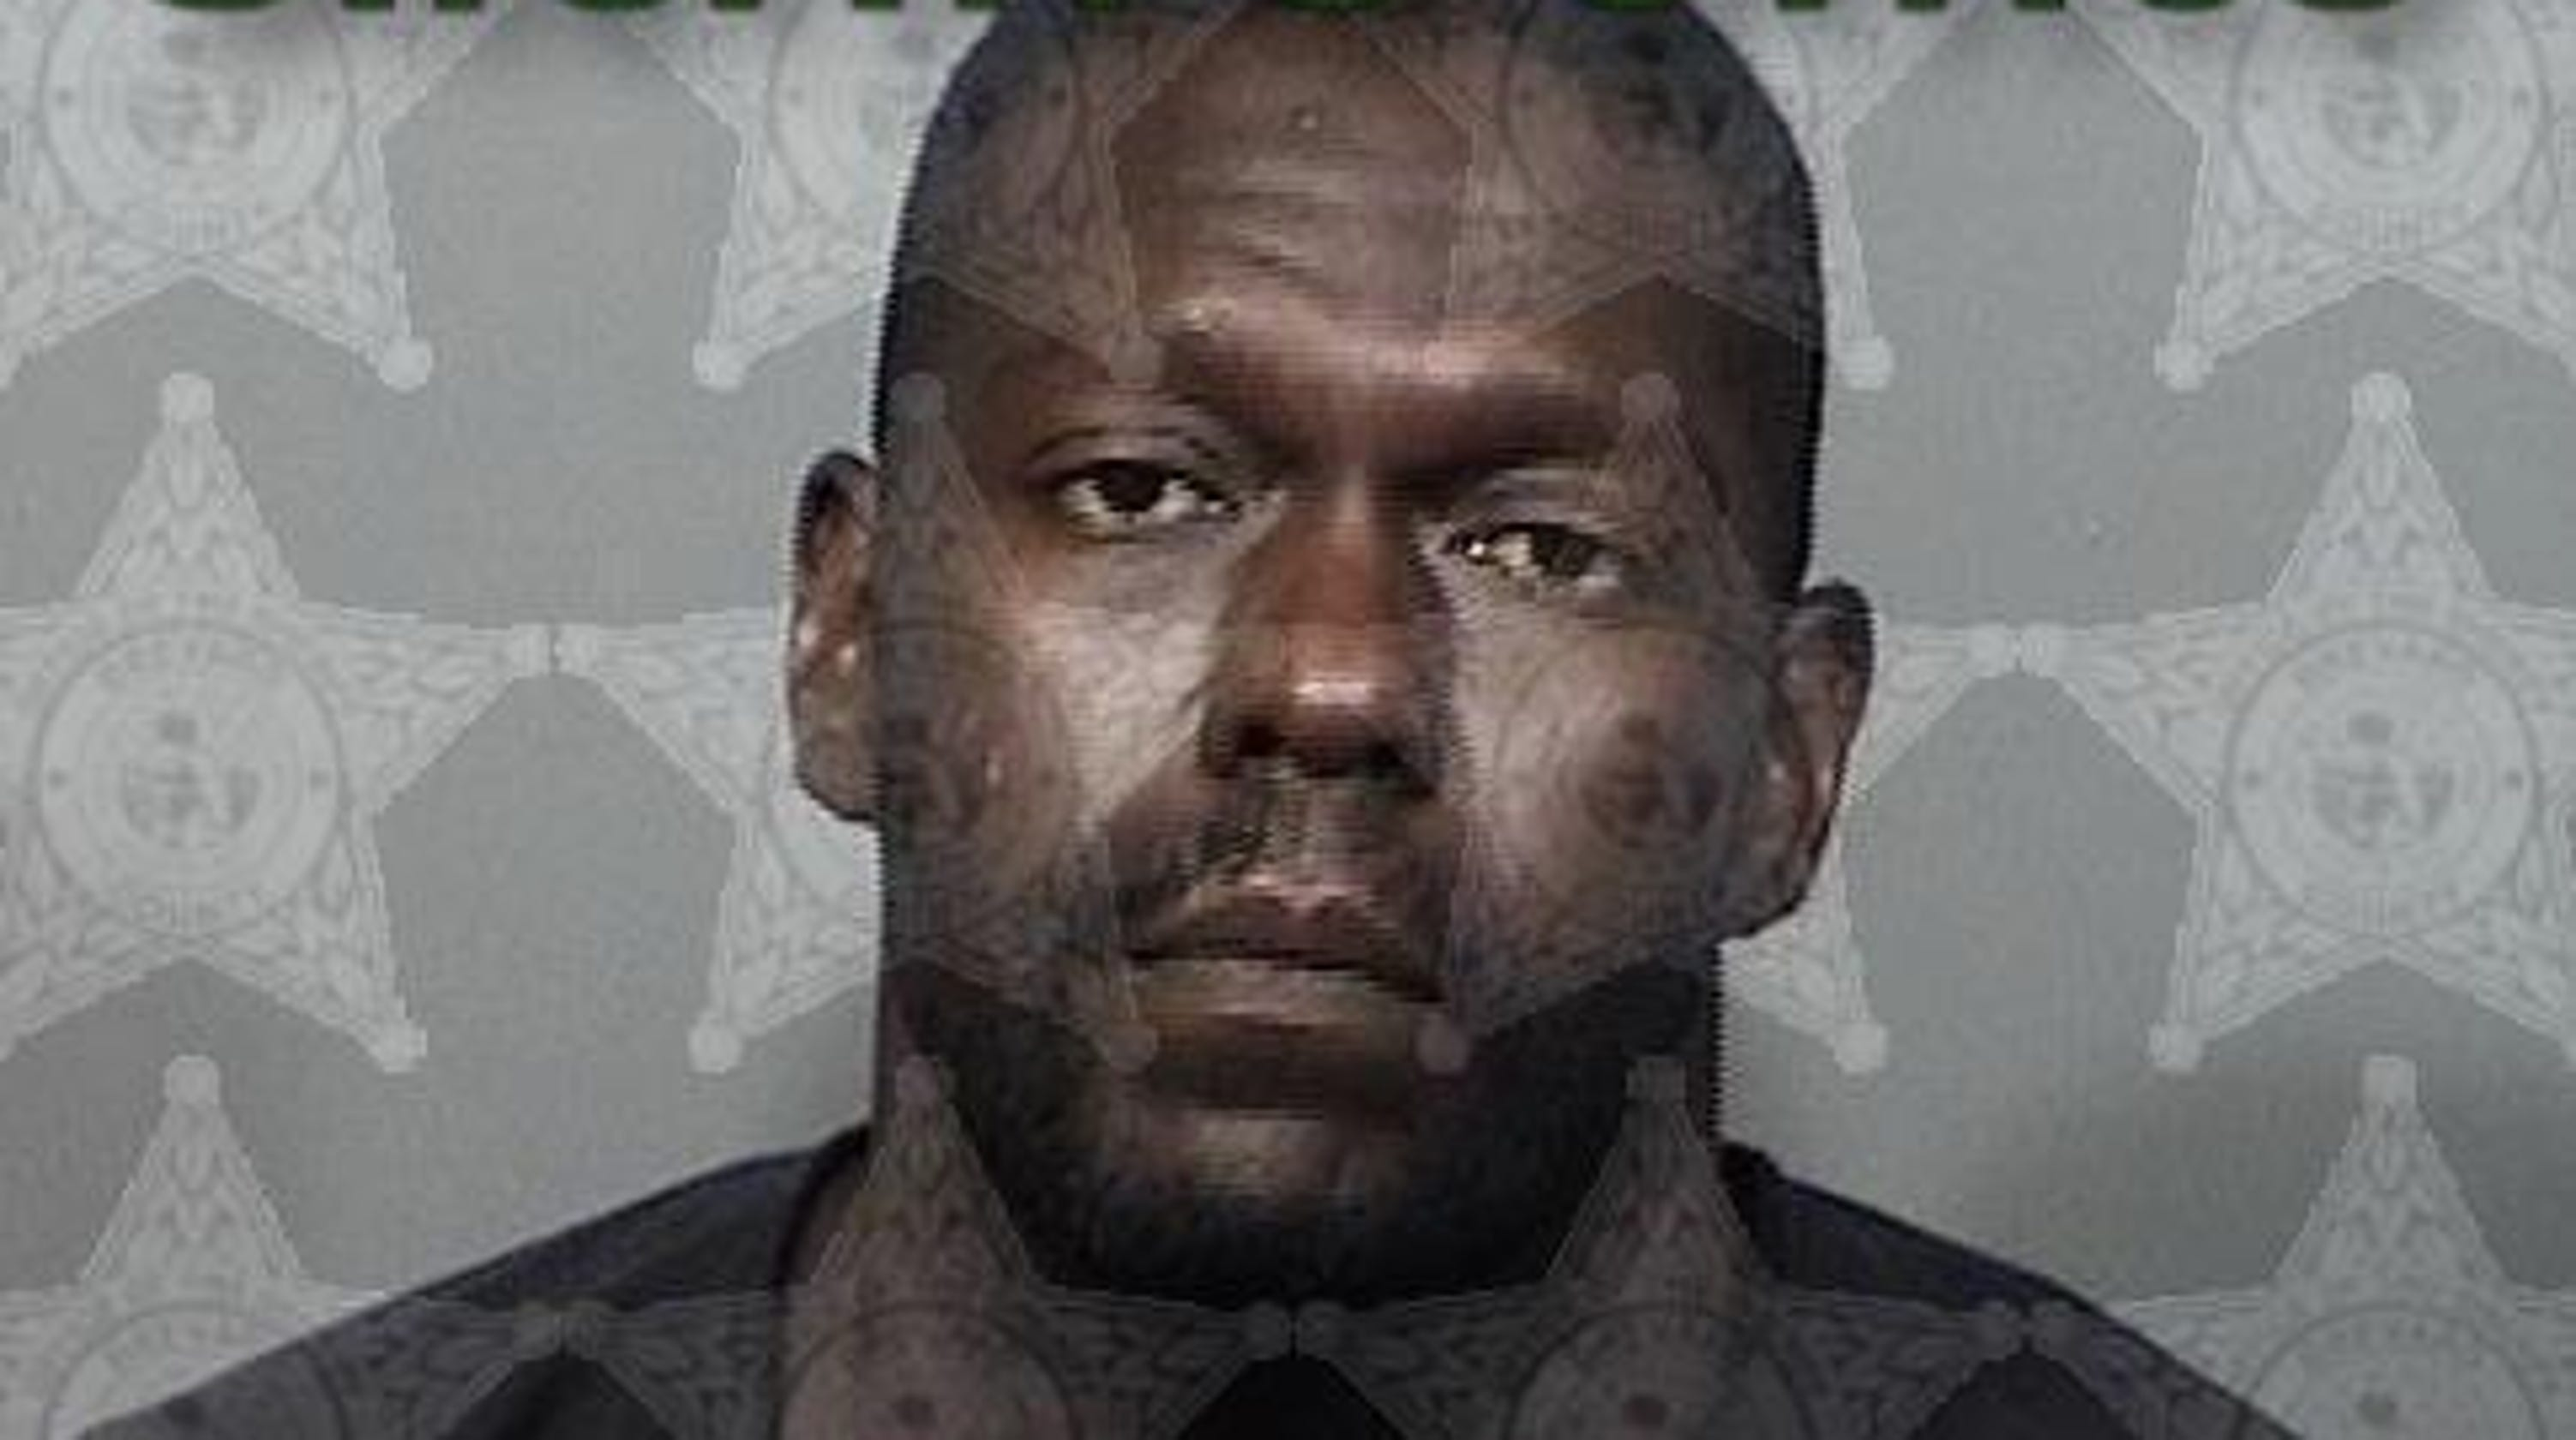 Cocoa suspect arrested in home burglary, assault of woman